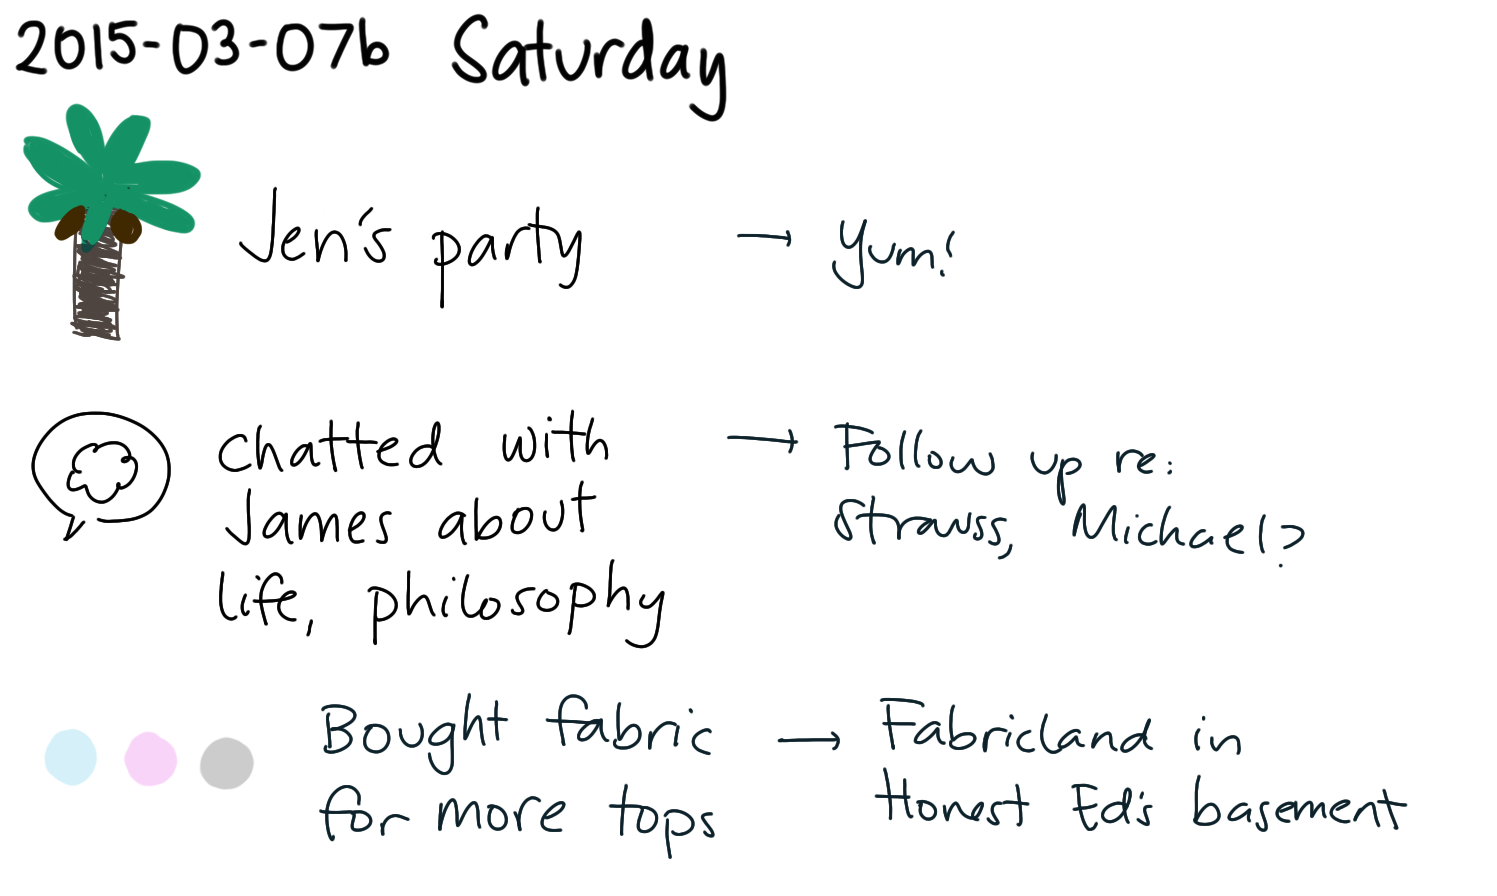 2015-03-07b Saturday -- index card #journal.png